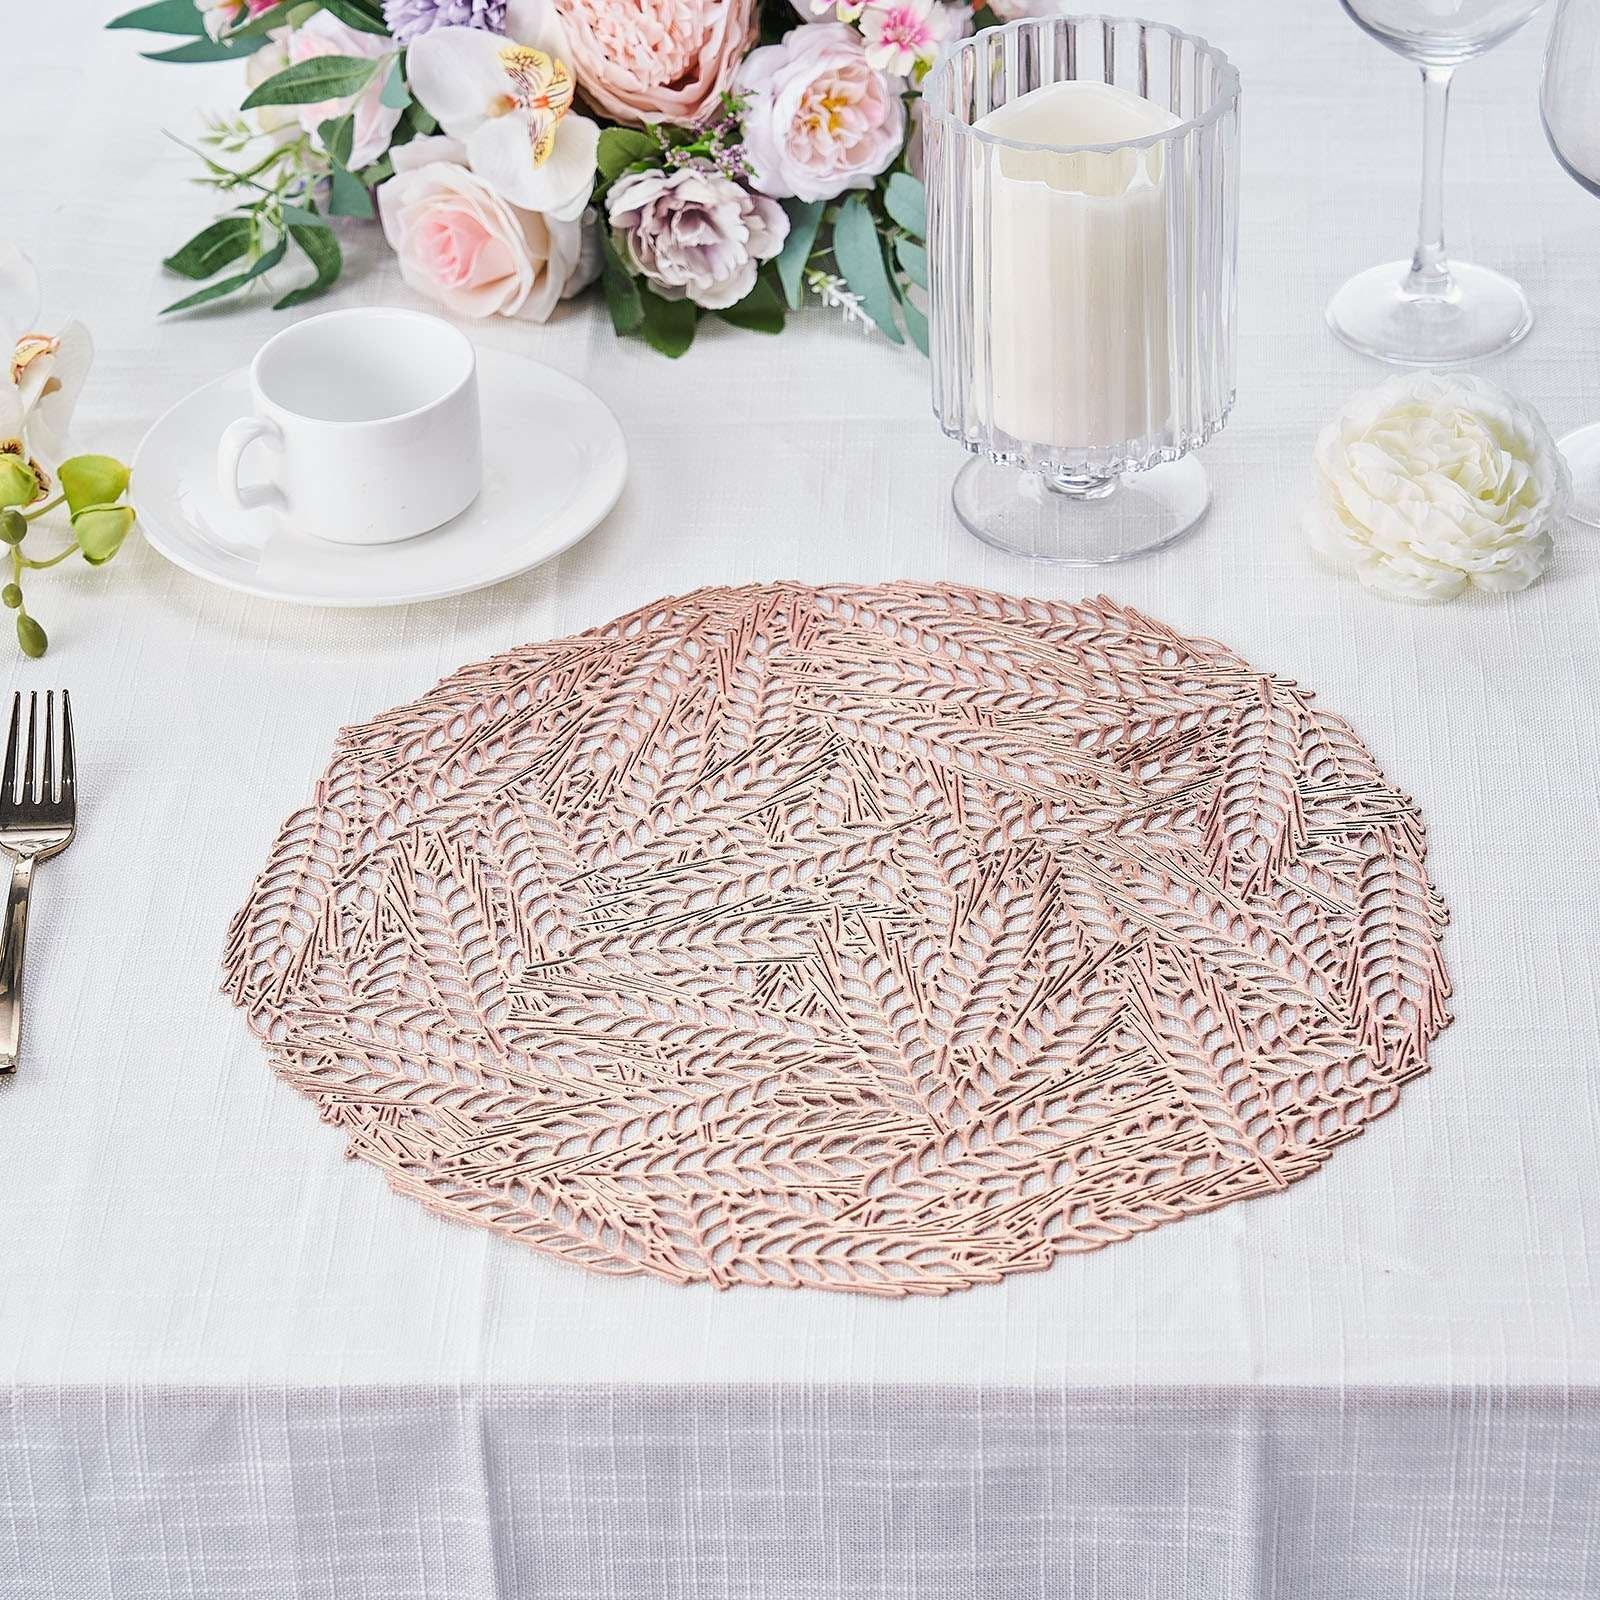 6 Pack 15 Non Slip Vinyl Placemats Geometric Table Placemats With Wheat Design Rose Gold Blush Tableclothsfactory